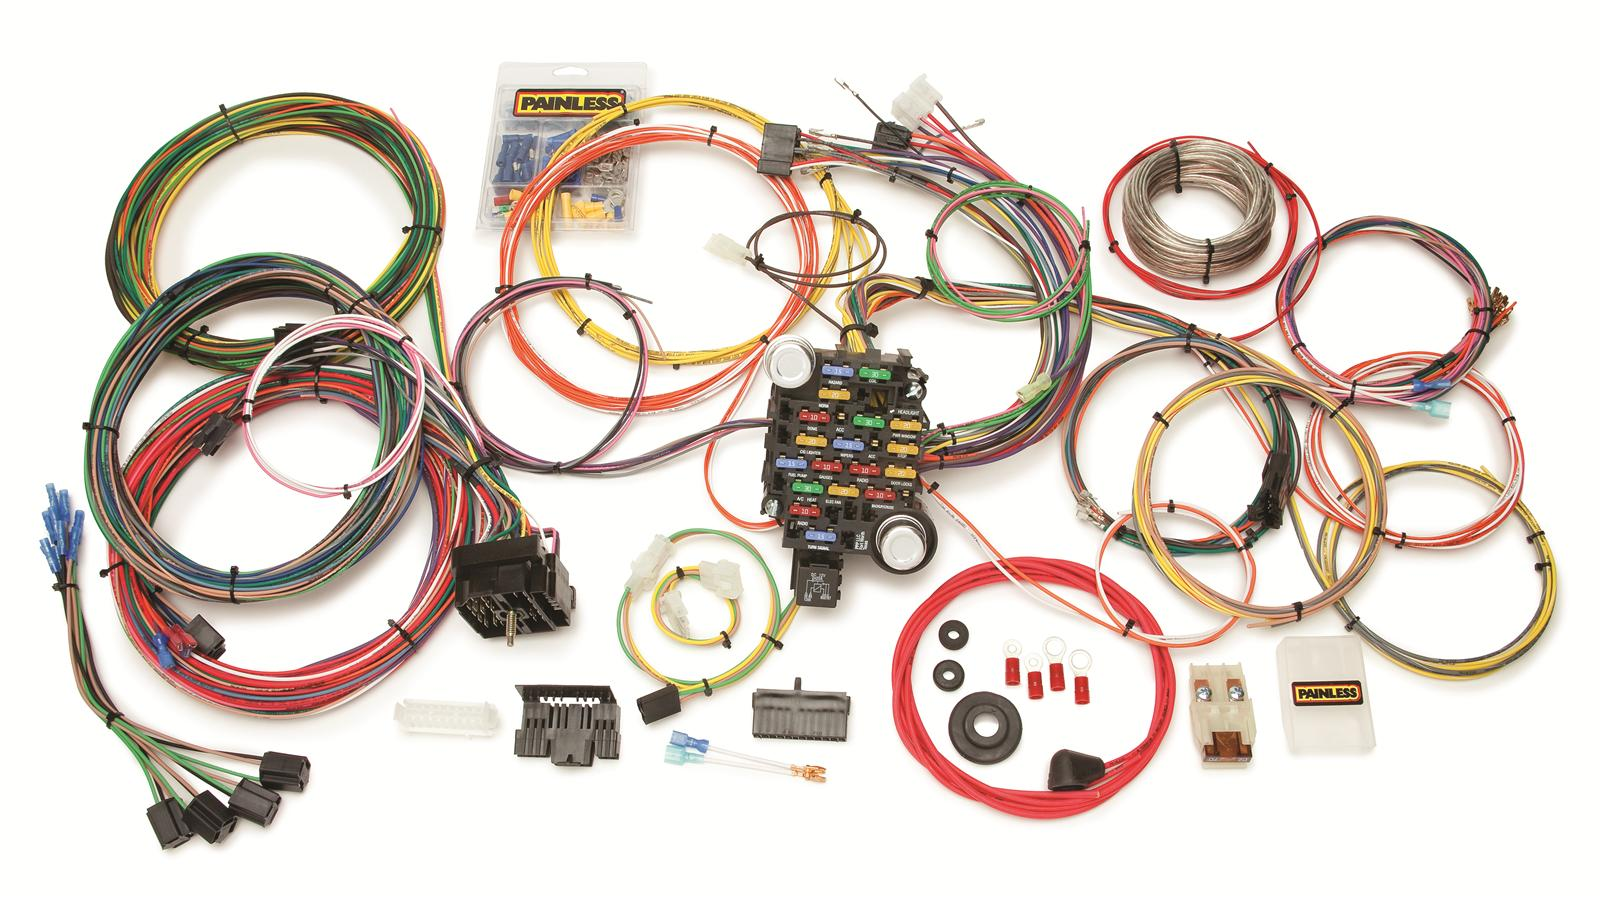 Painless Performance Gmc Chevy Truck Harnesses 10205 Free Shipping Wiring Diagram 1983 350 K10 On Orders Over 99 At Summit Racing